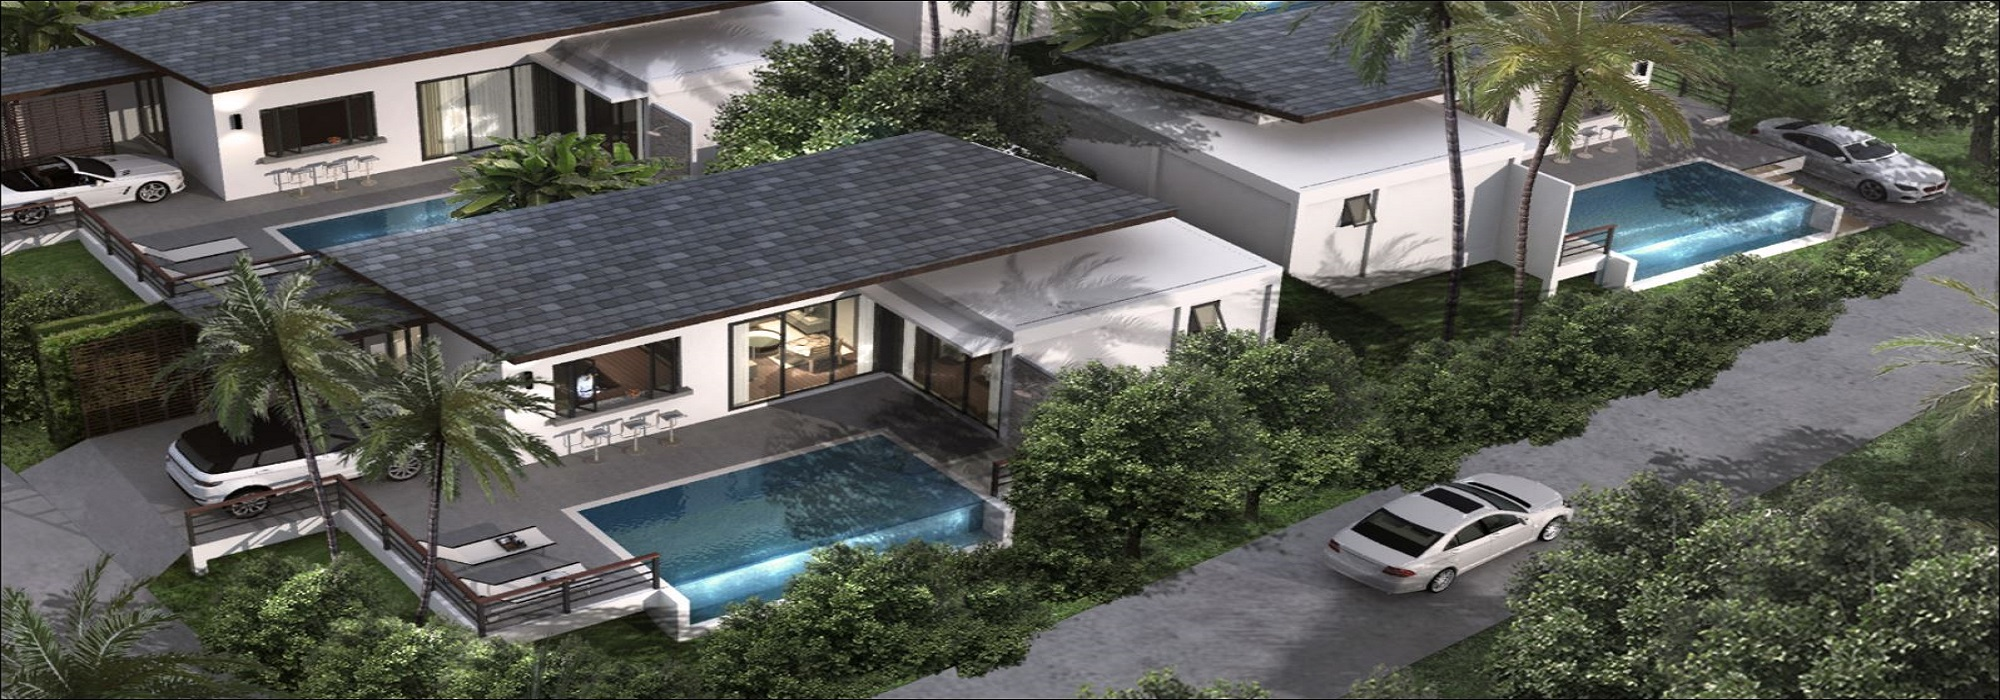 For sale villas off plan Lamai Koh Samui